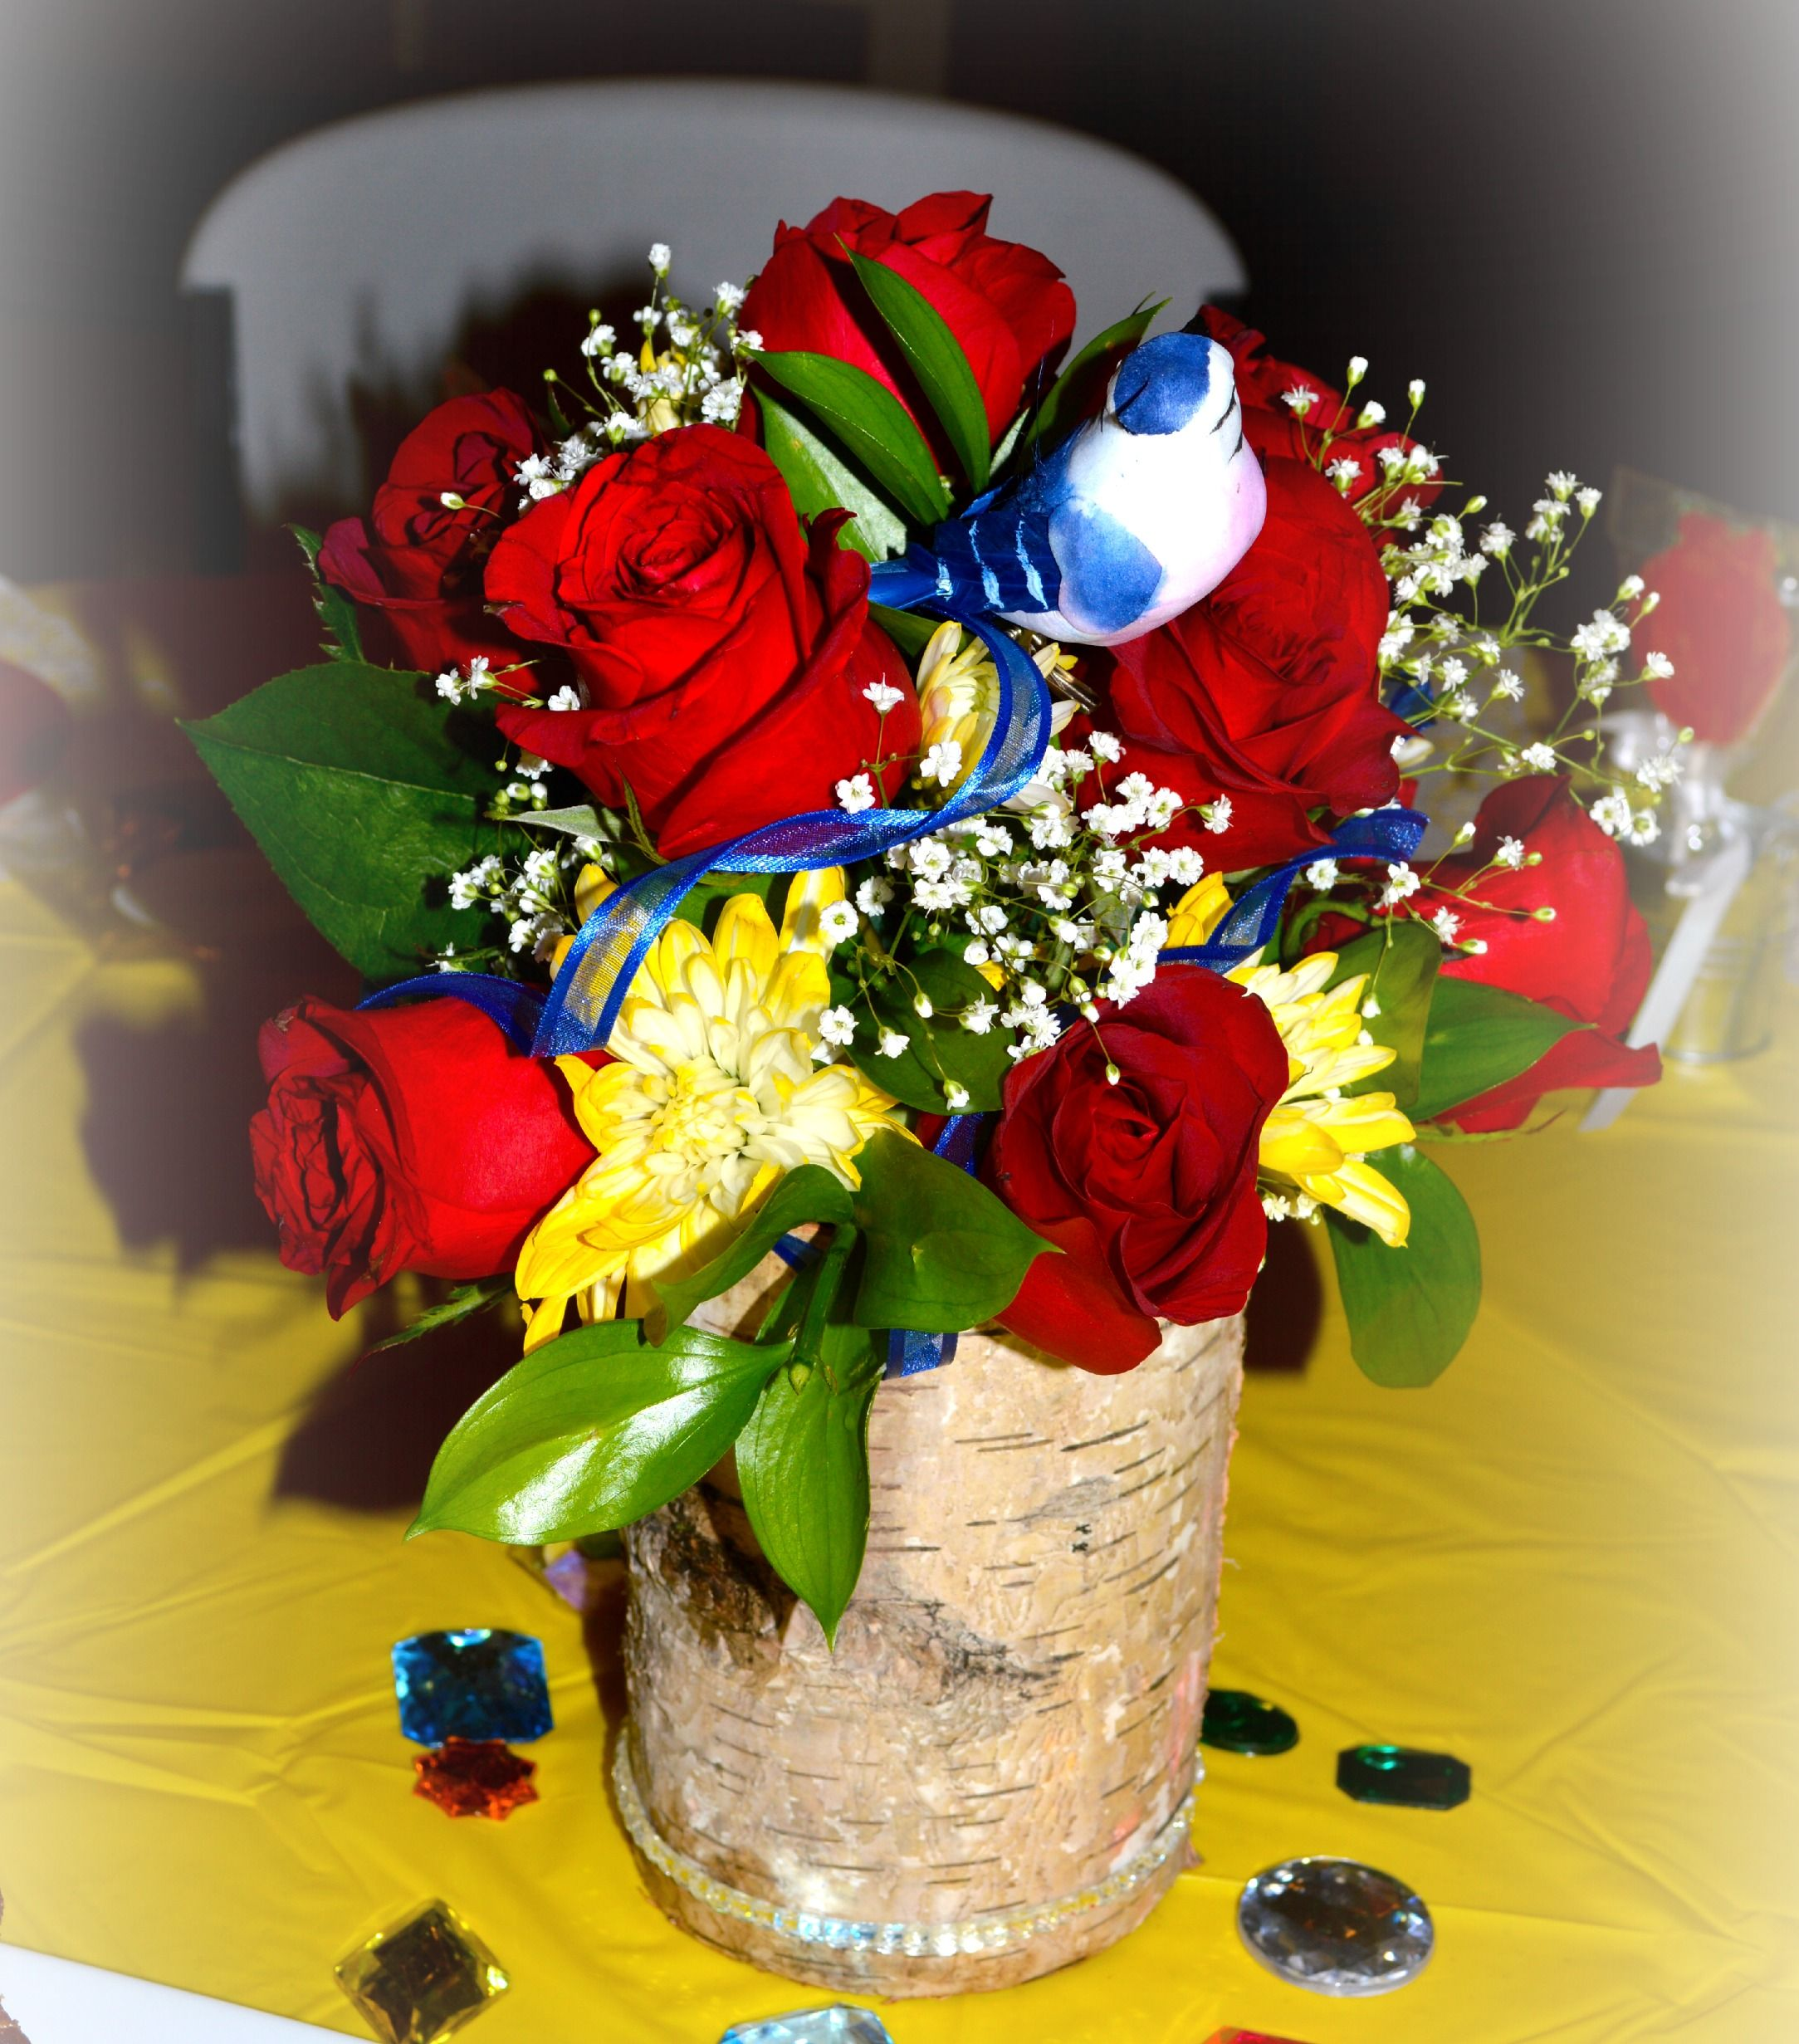 Snow Wedding Ideas: Snow White Themed Bridal Shower Centerpiece. Custom Design